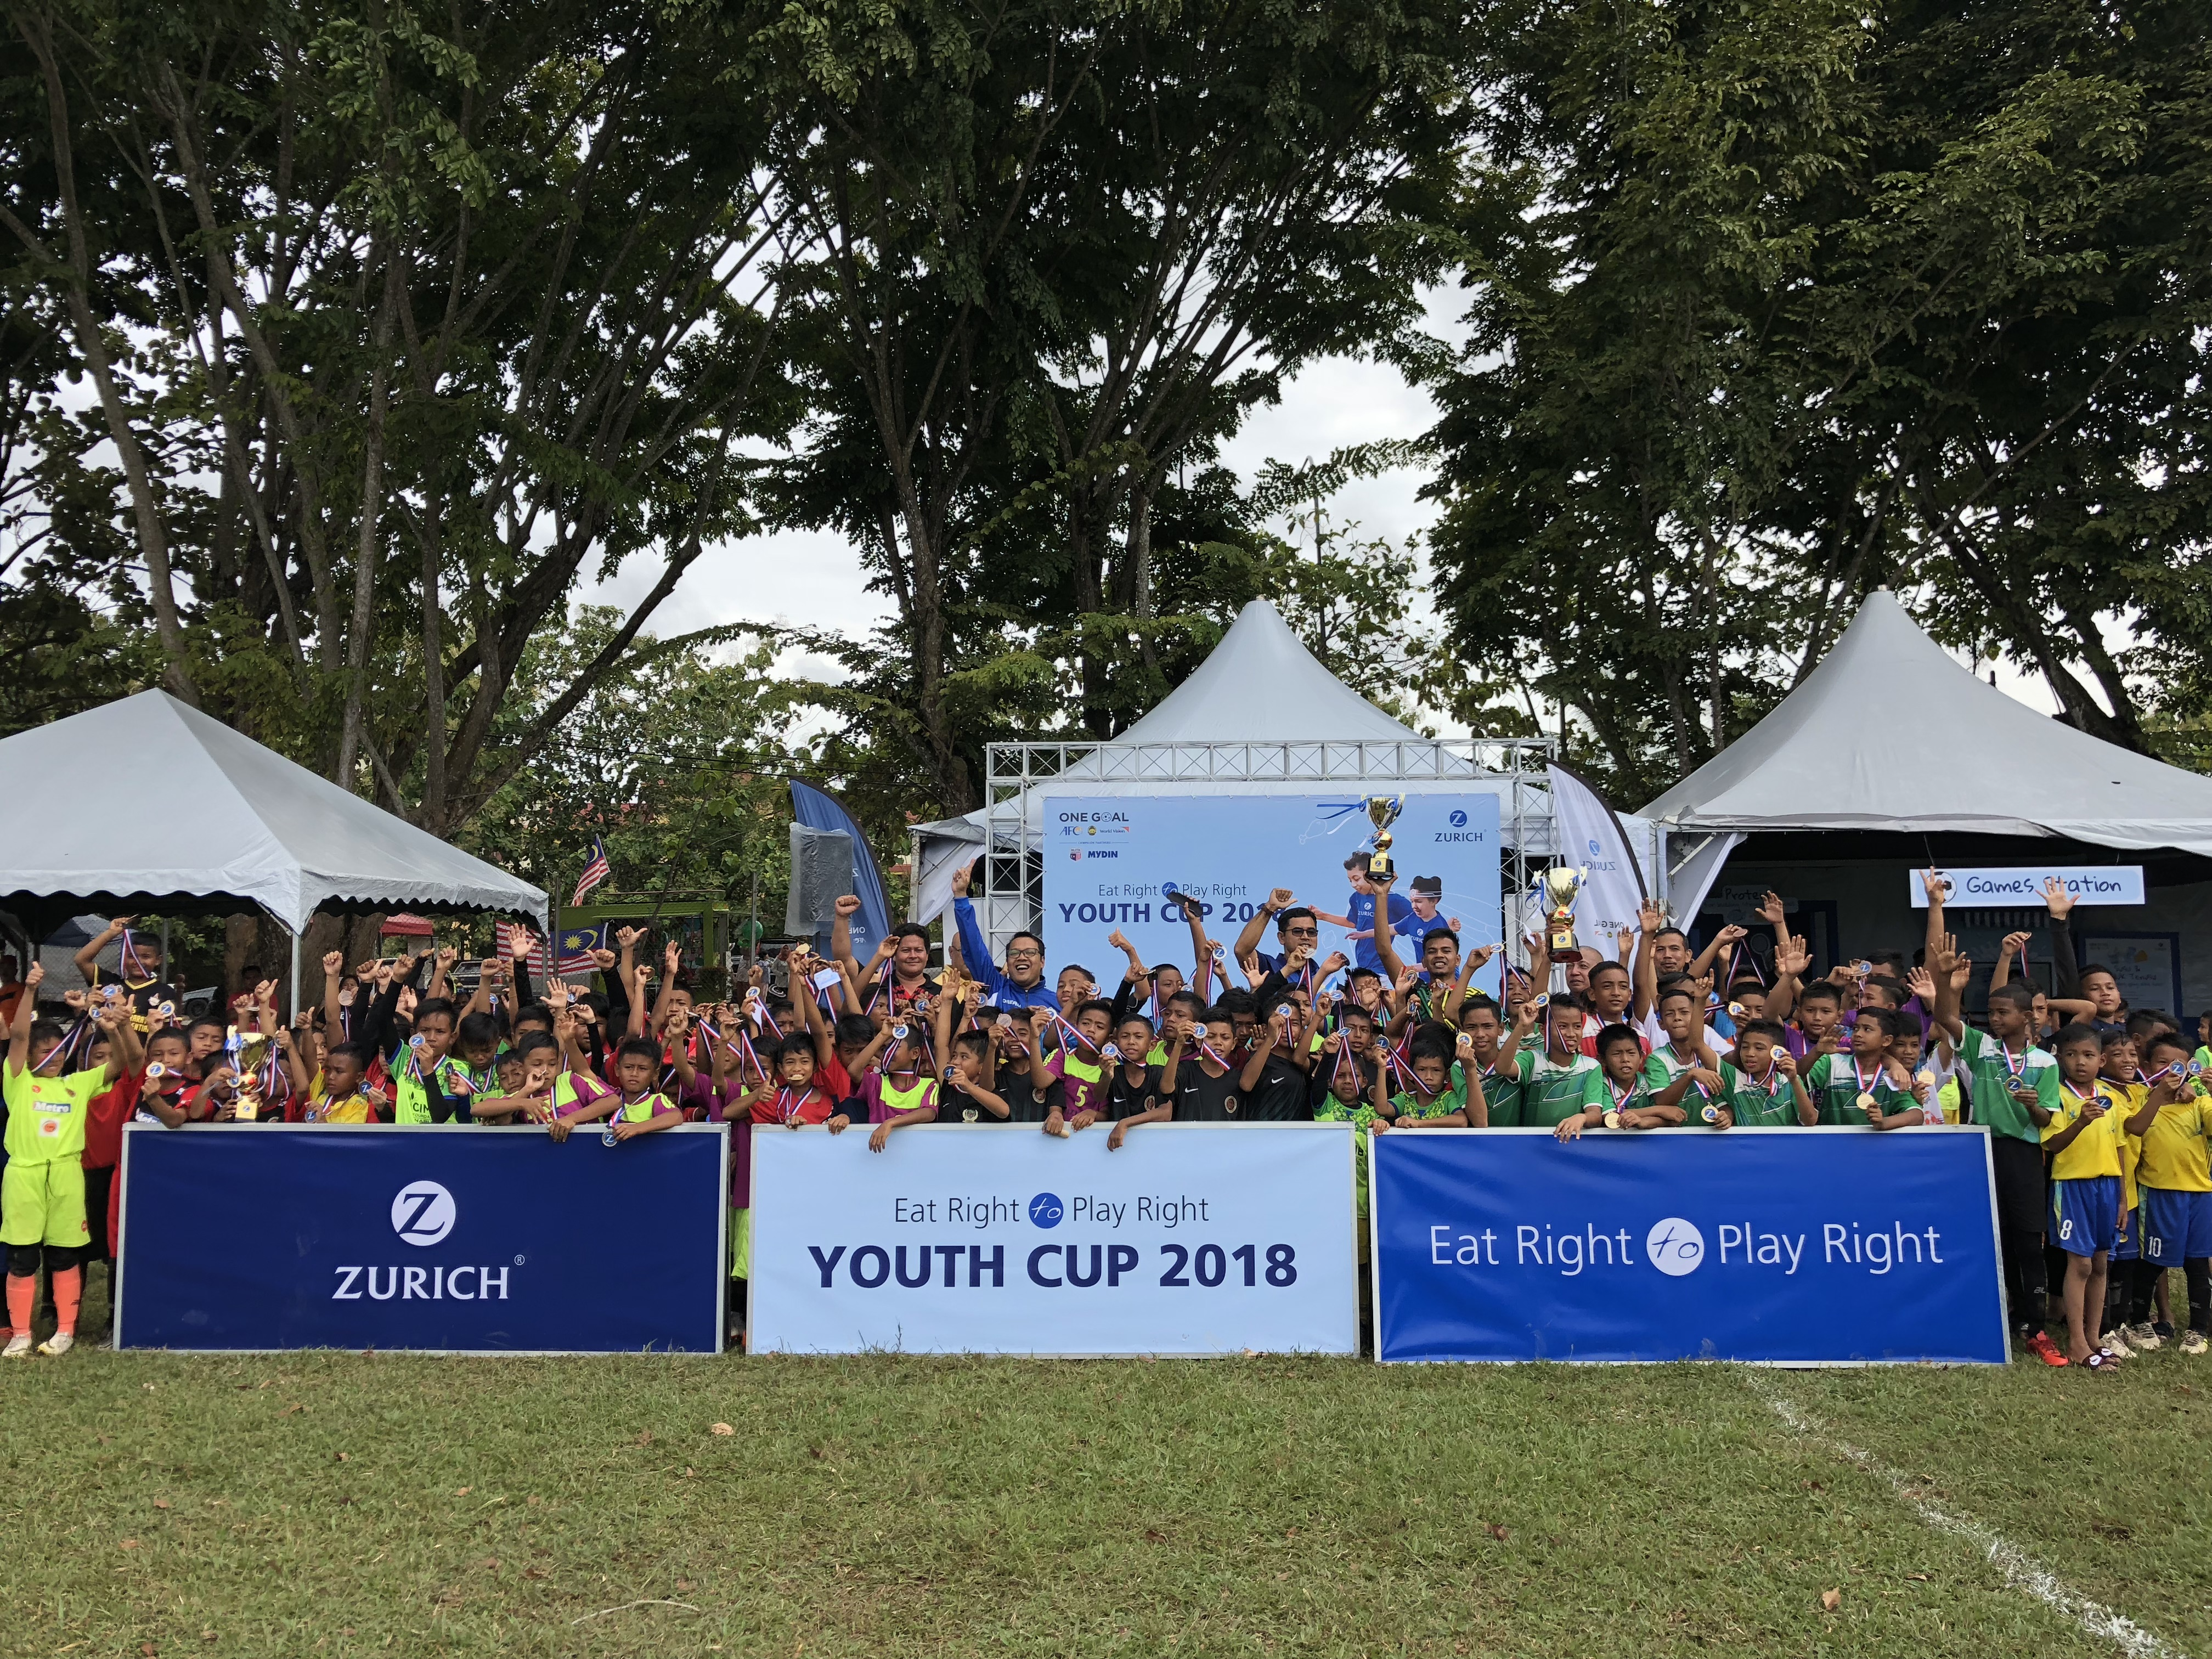 Youth Cup 2018